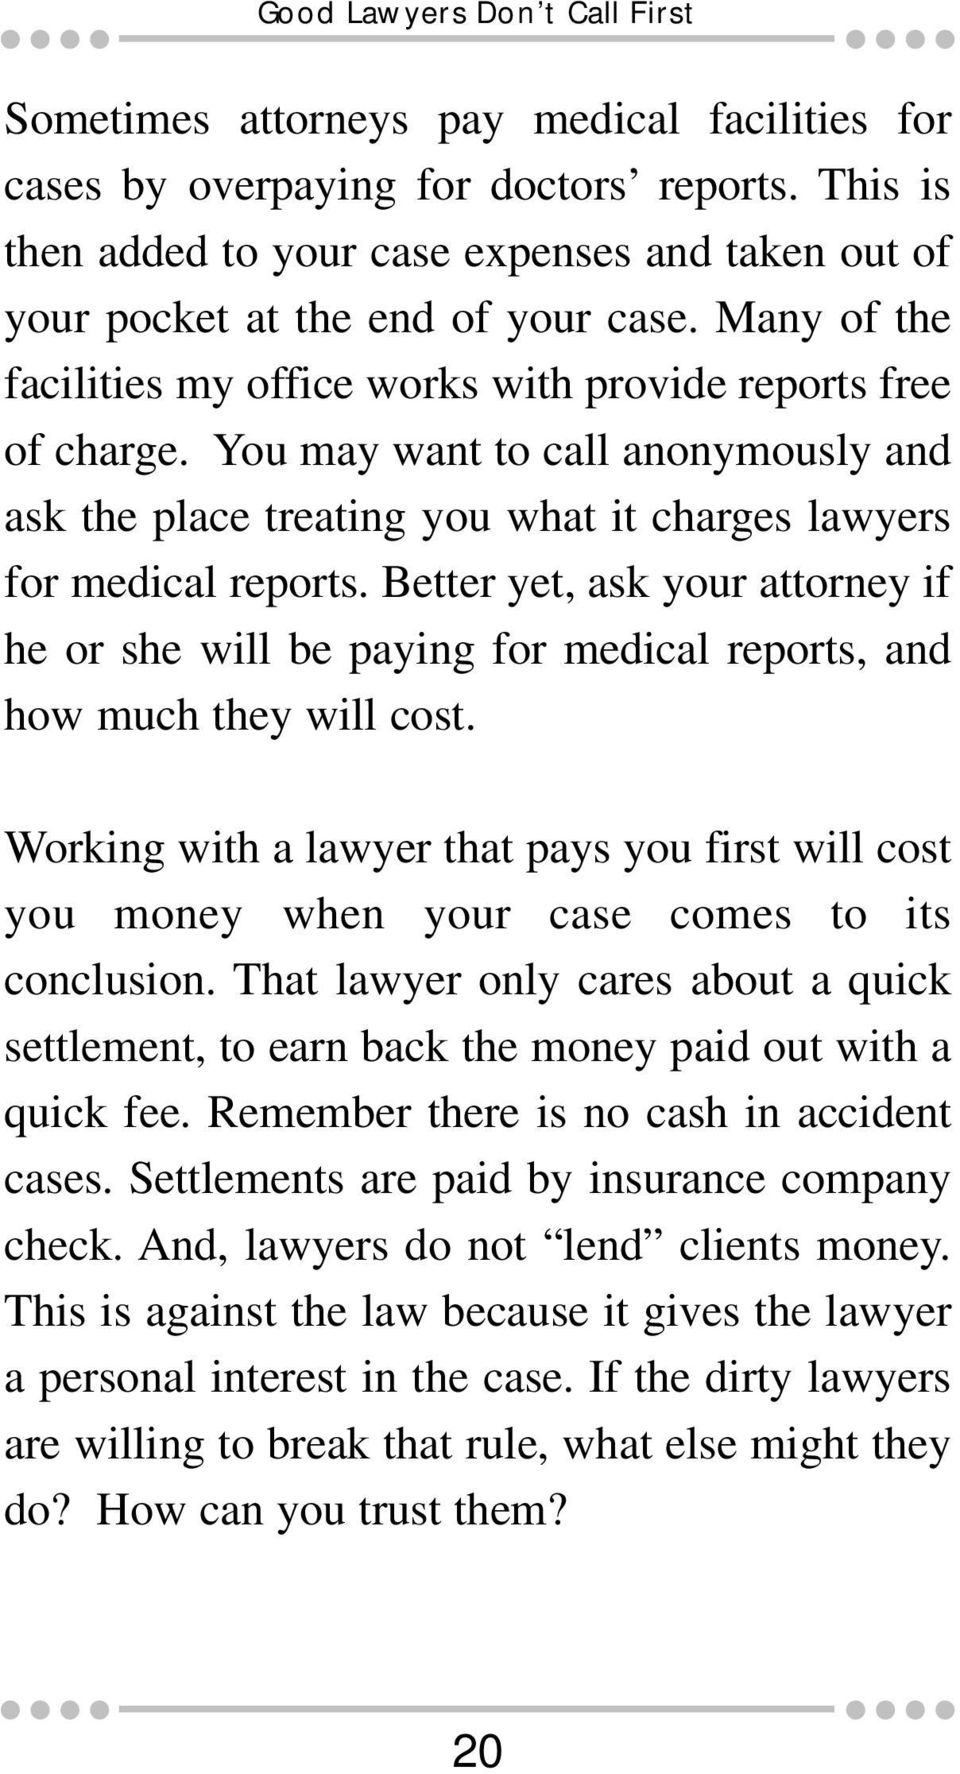 You may want to call anonymously and ask the place treating you what it charges lawyers for medical reports.